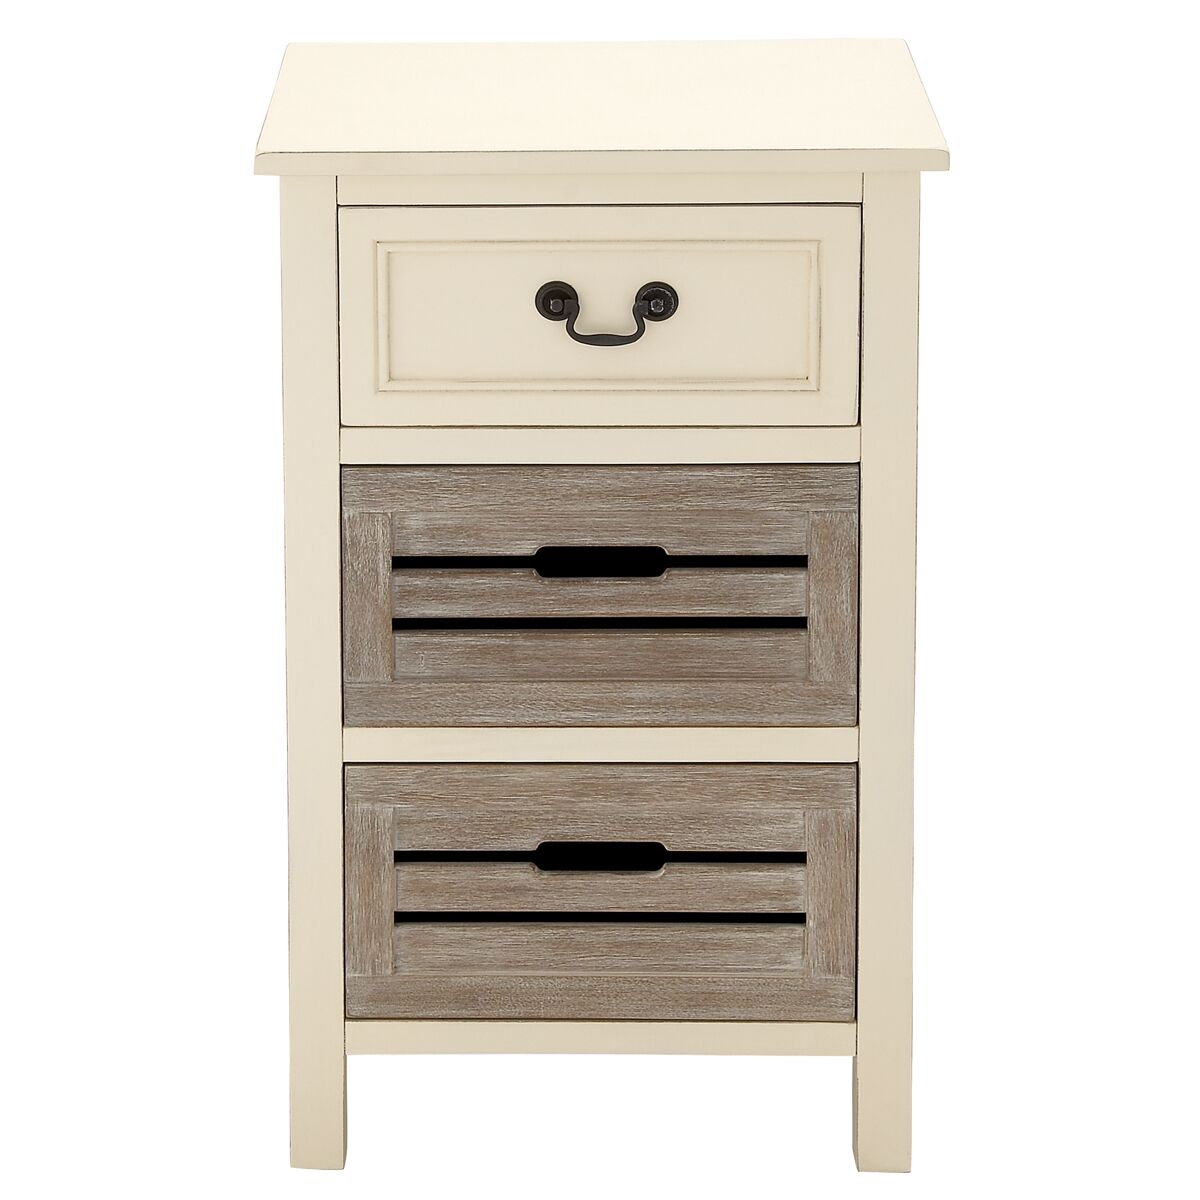 Urban Designs 3 Drawer Nightstand Color: Beige and Gray